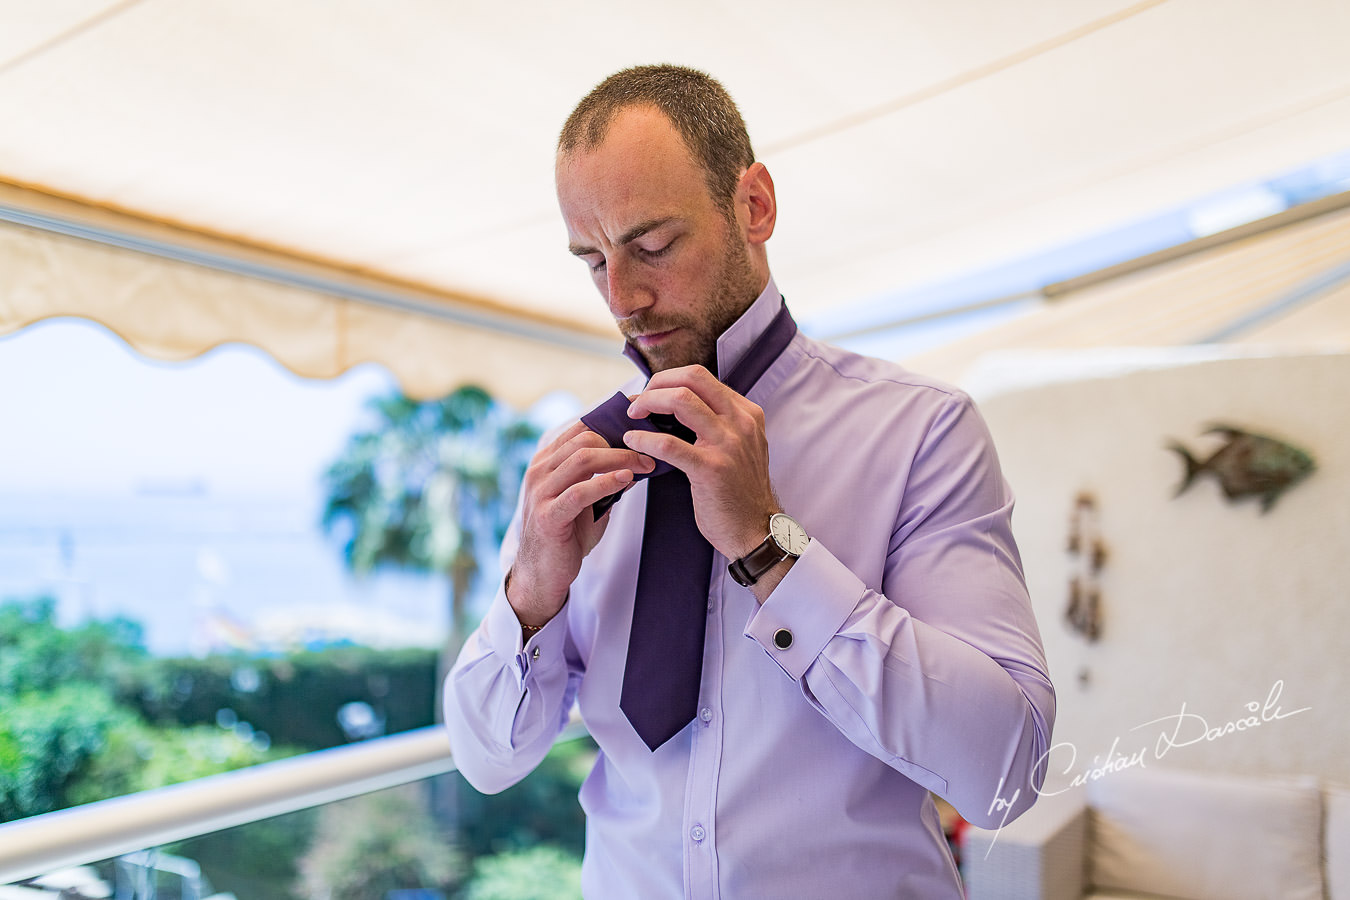 Niels, the groom, photographed during his preparations by Cyprus Photographer Cristian Dascalu.